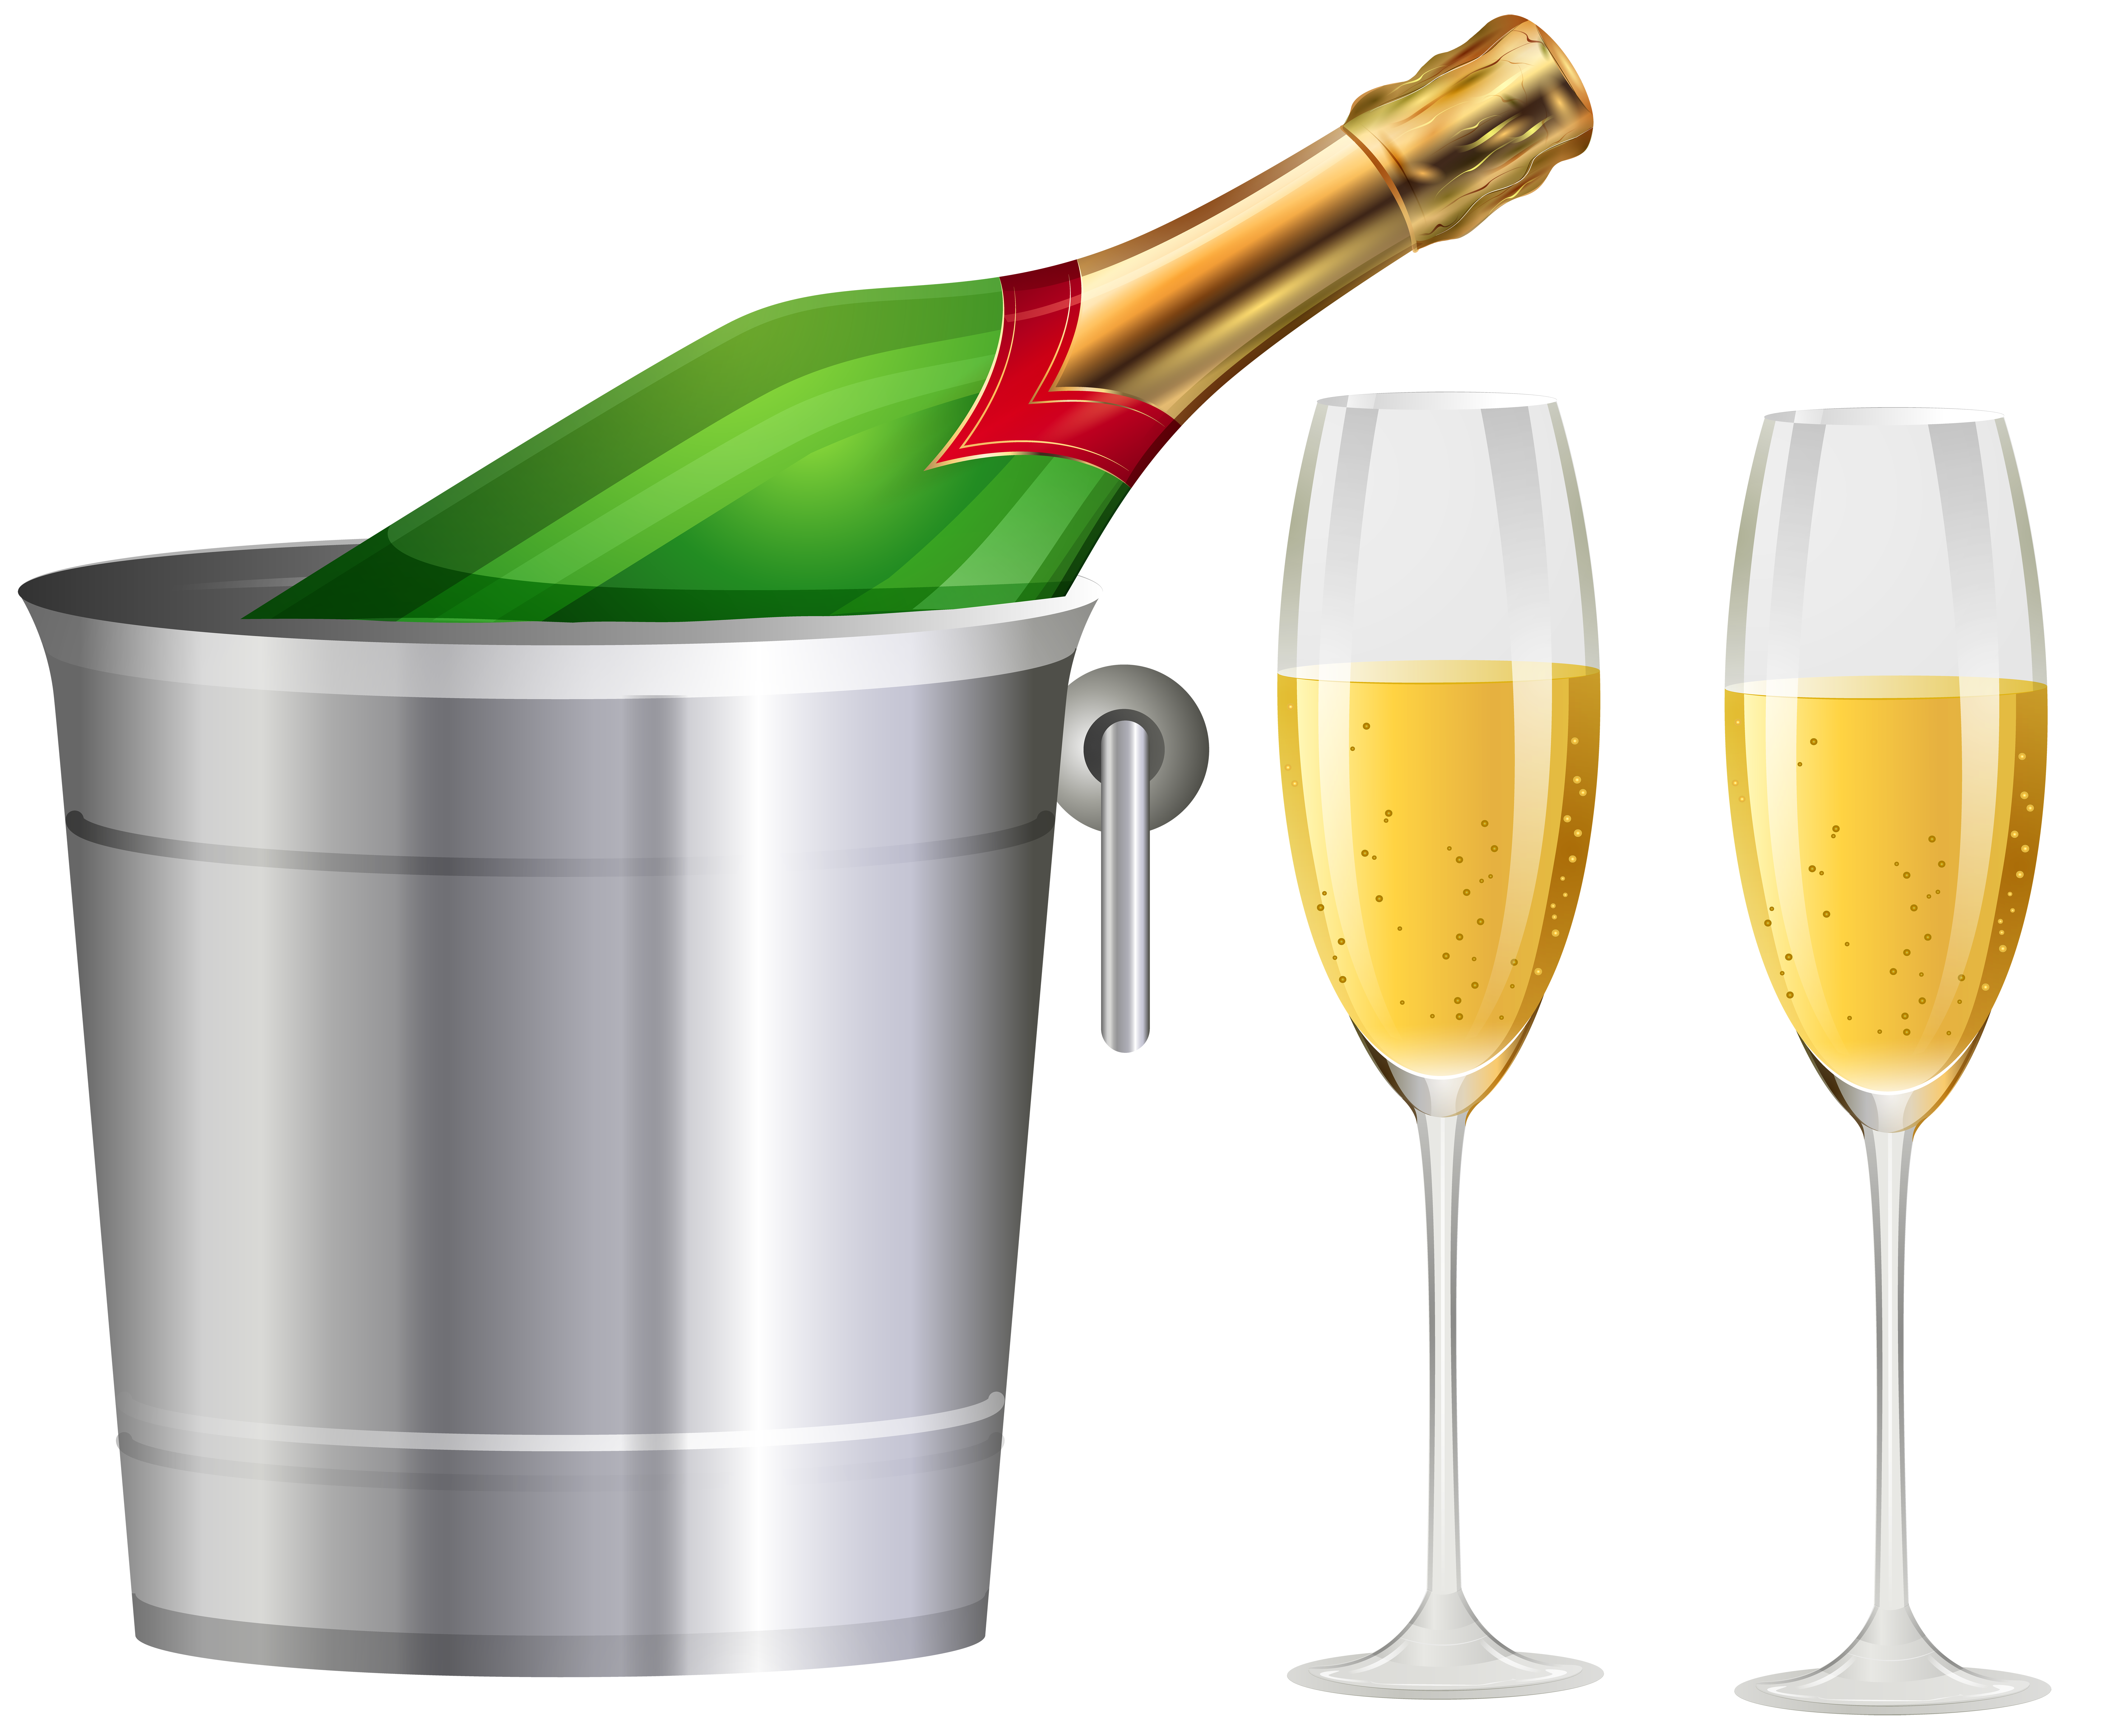 Champagne bottle and glasses clipart freeuse Champagne Bottle and Glasses Transparent Clip Art Image | Gallery ... freeuse